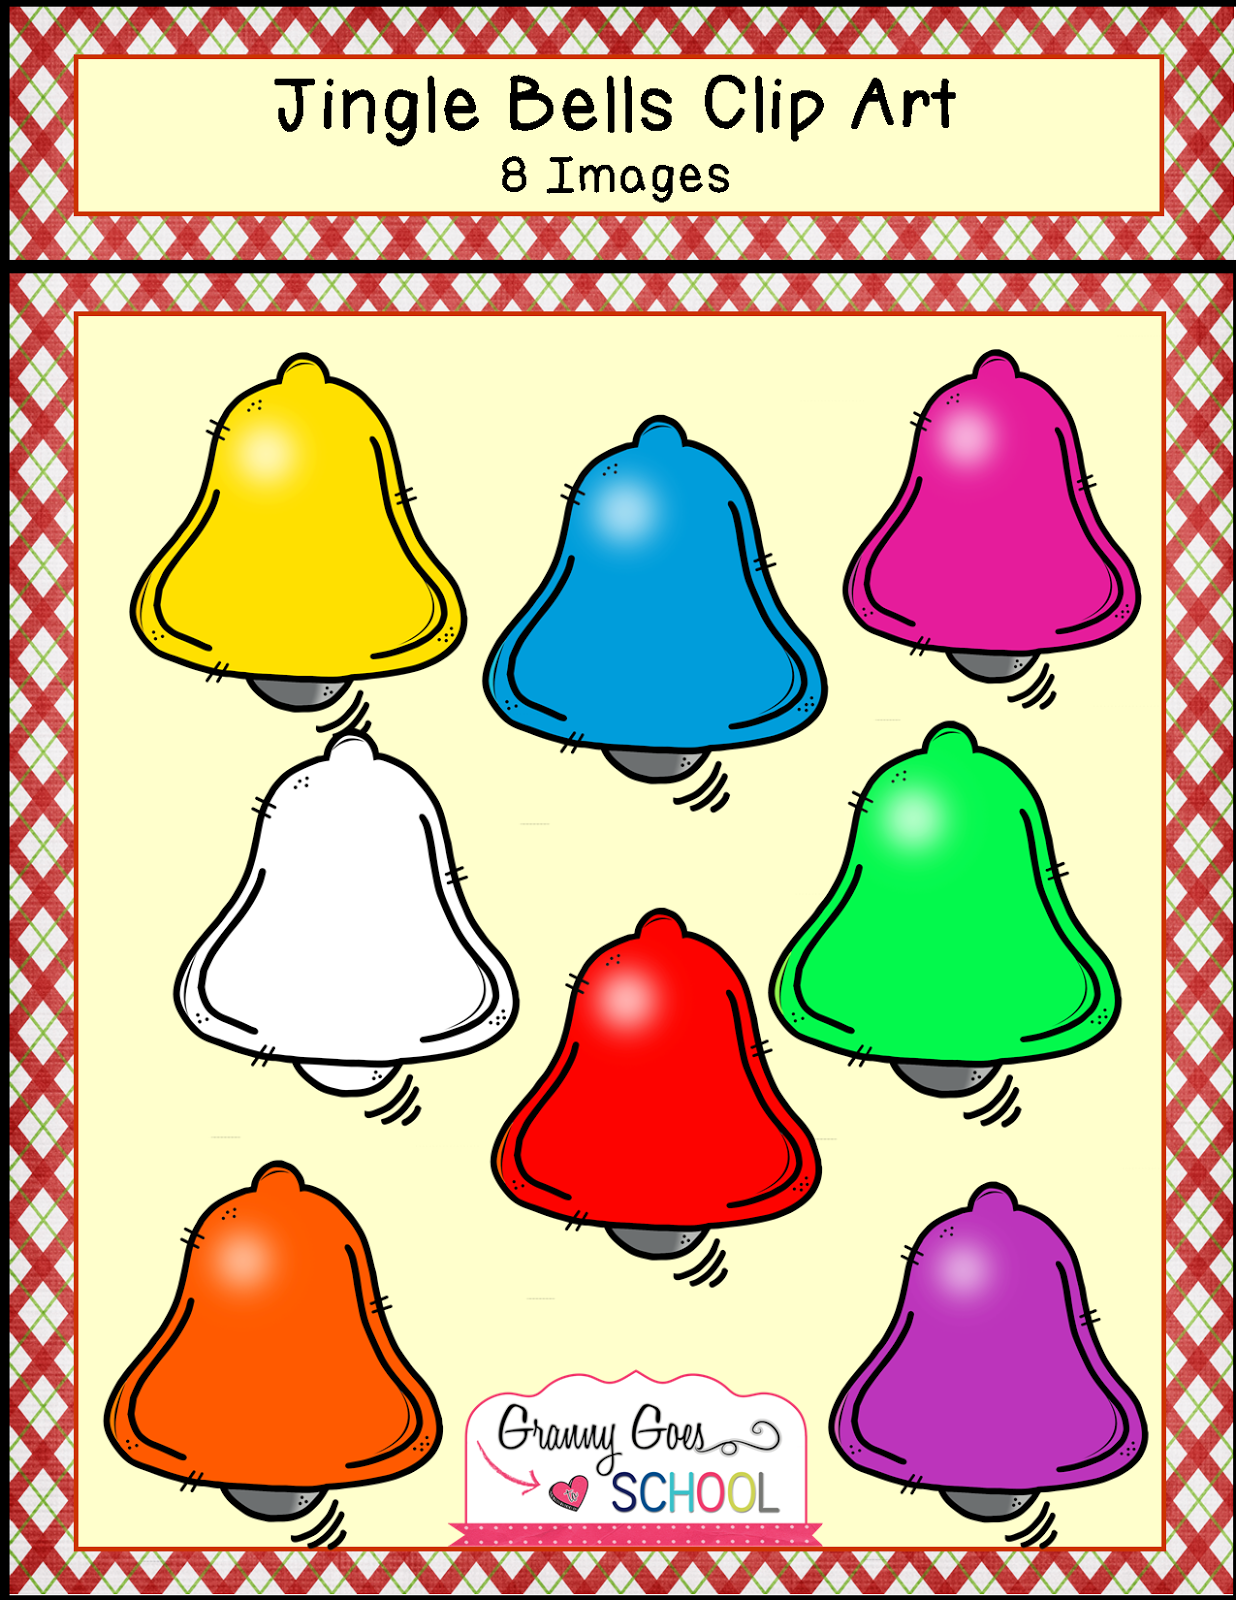 http://www.teacherspayteachers.com/Product/Jingle-Bells-Clip-Art-1599638